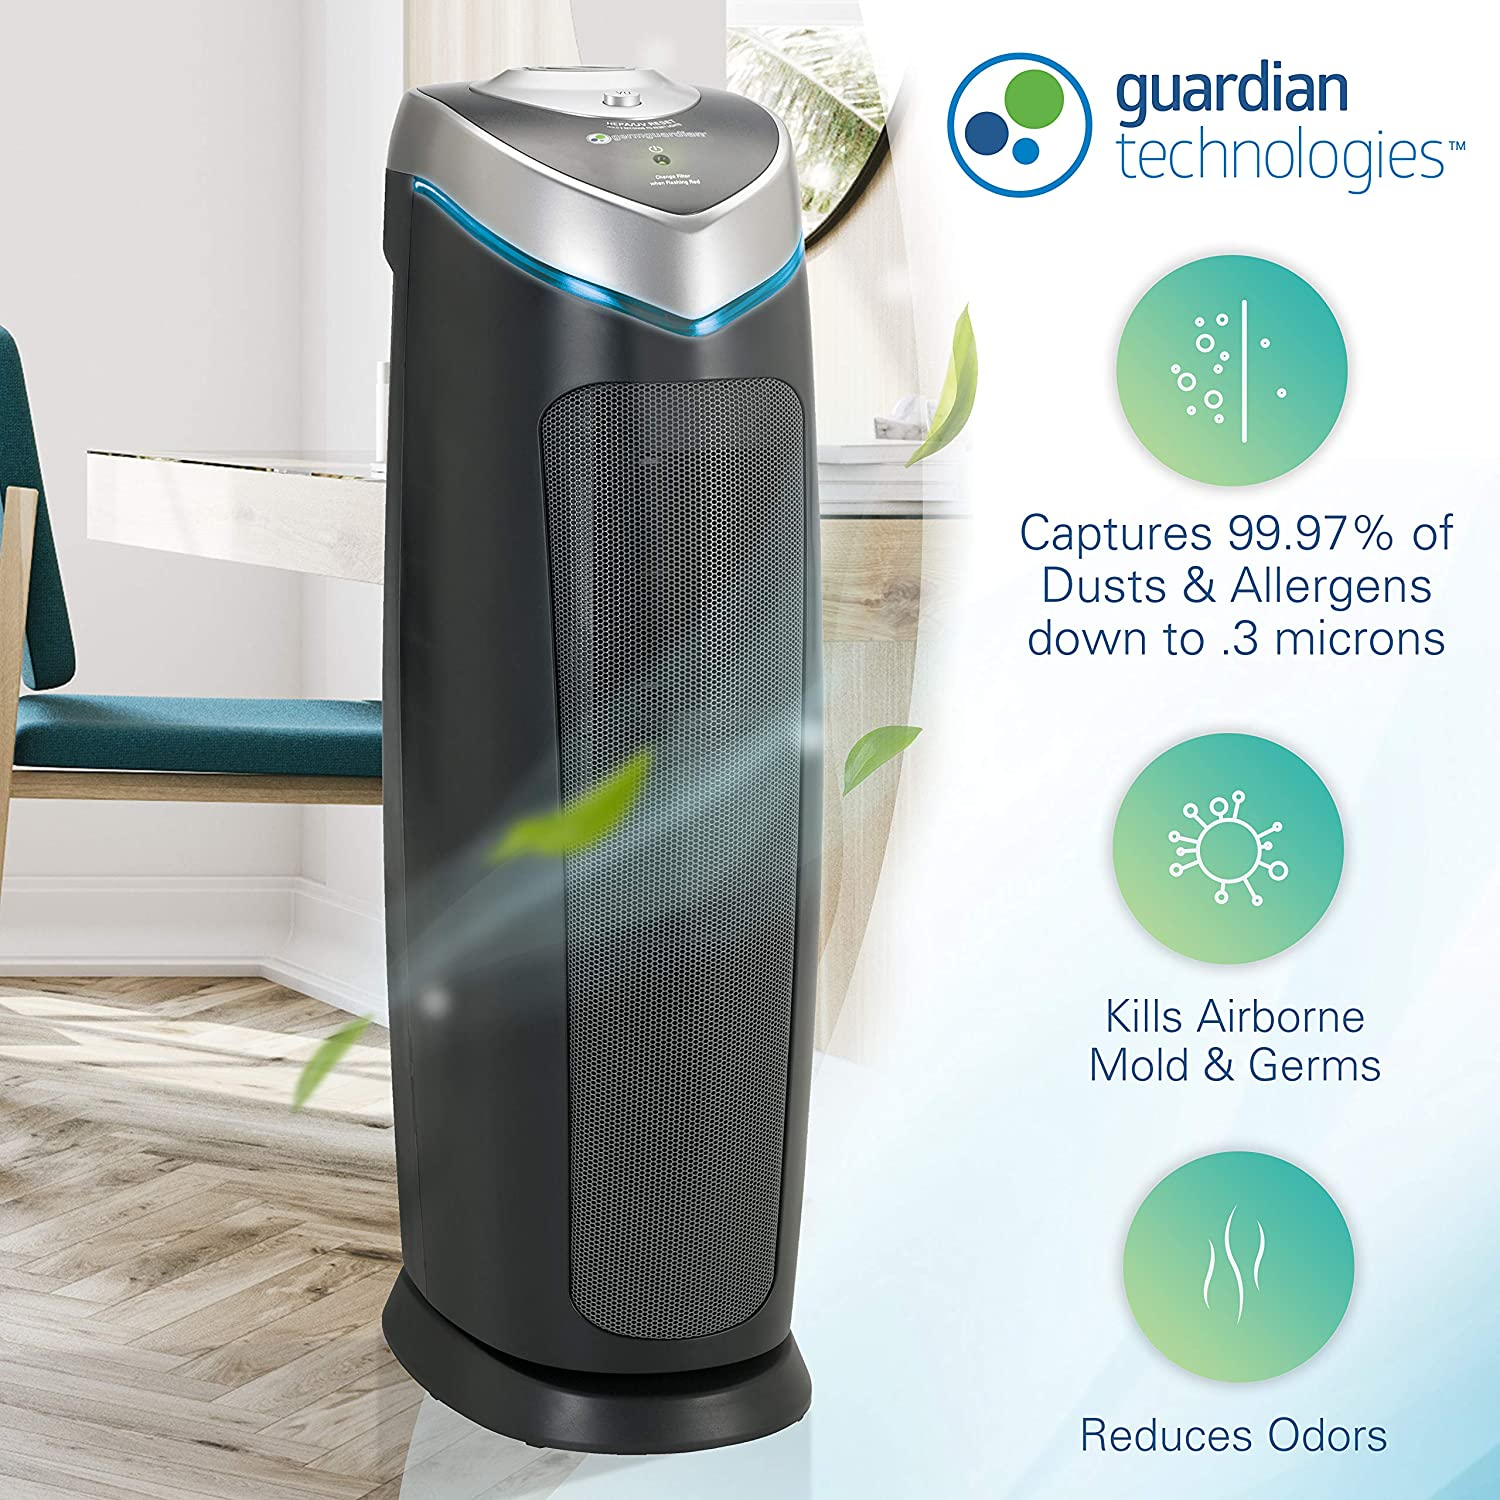 Germ Guardian True HEPA Filter Air Purifier with UV Light Sanitizer, Eliminates Germs, Filters Allergies, Pollen, Smoke, Dust Pet Dander, Mold Odors, Quiet 22 inch 4-in-1 Air Purifier for Home AC4825E: Health & Personal Care